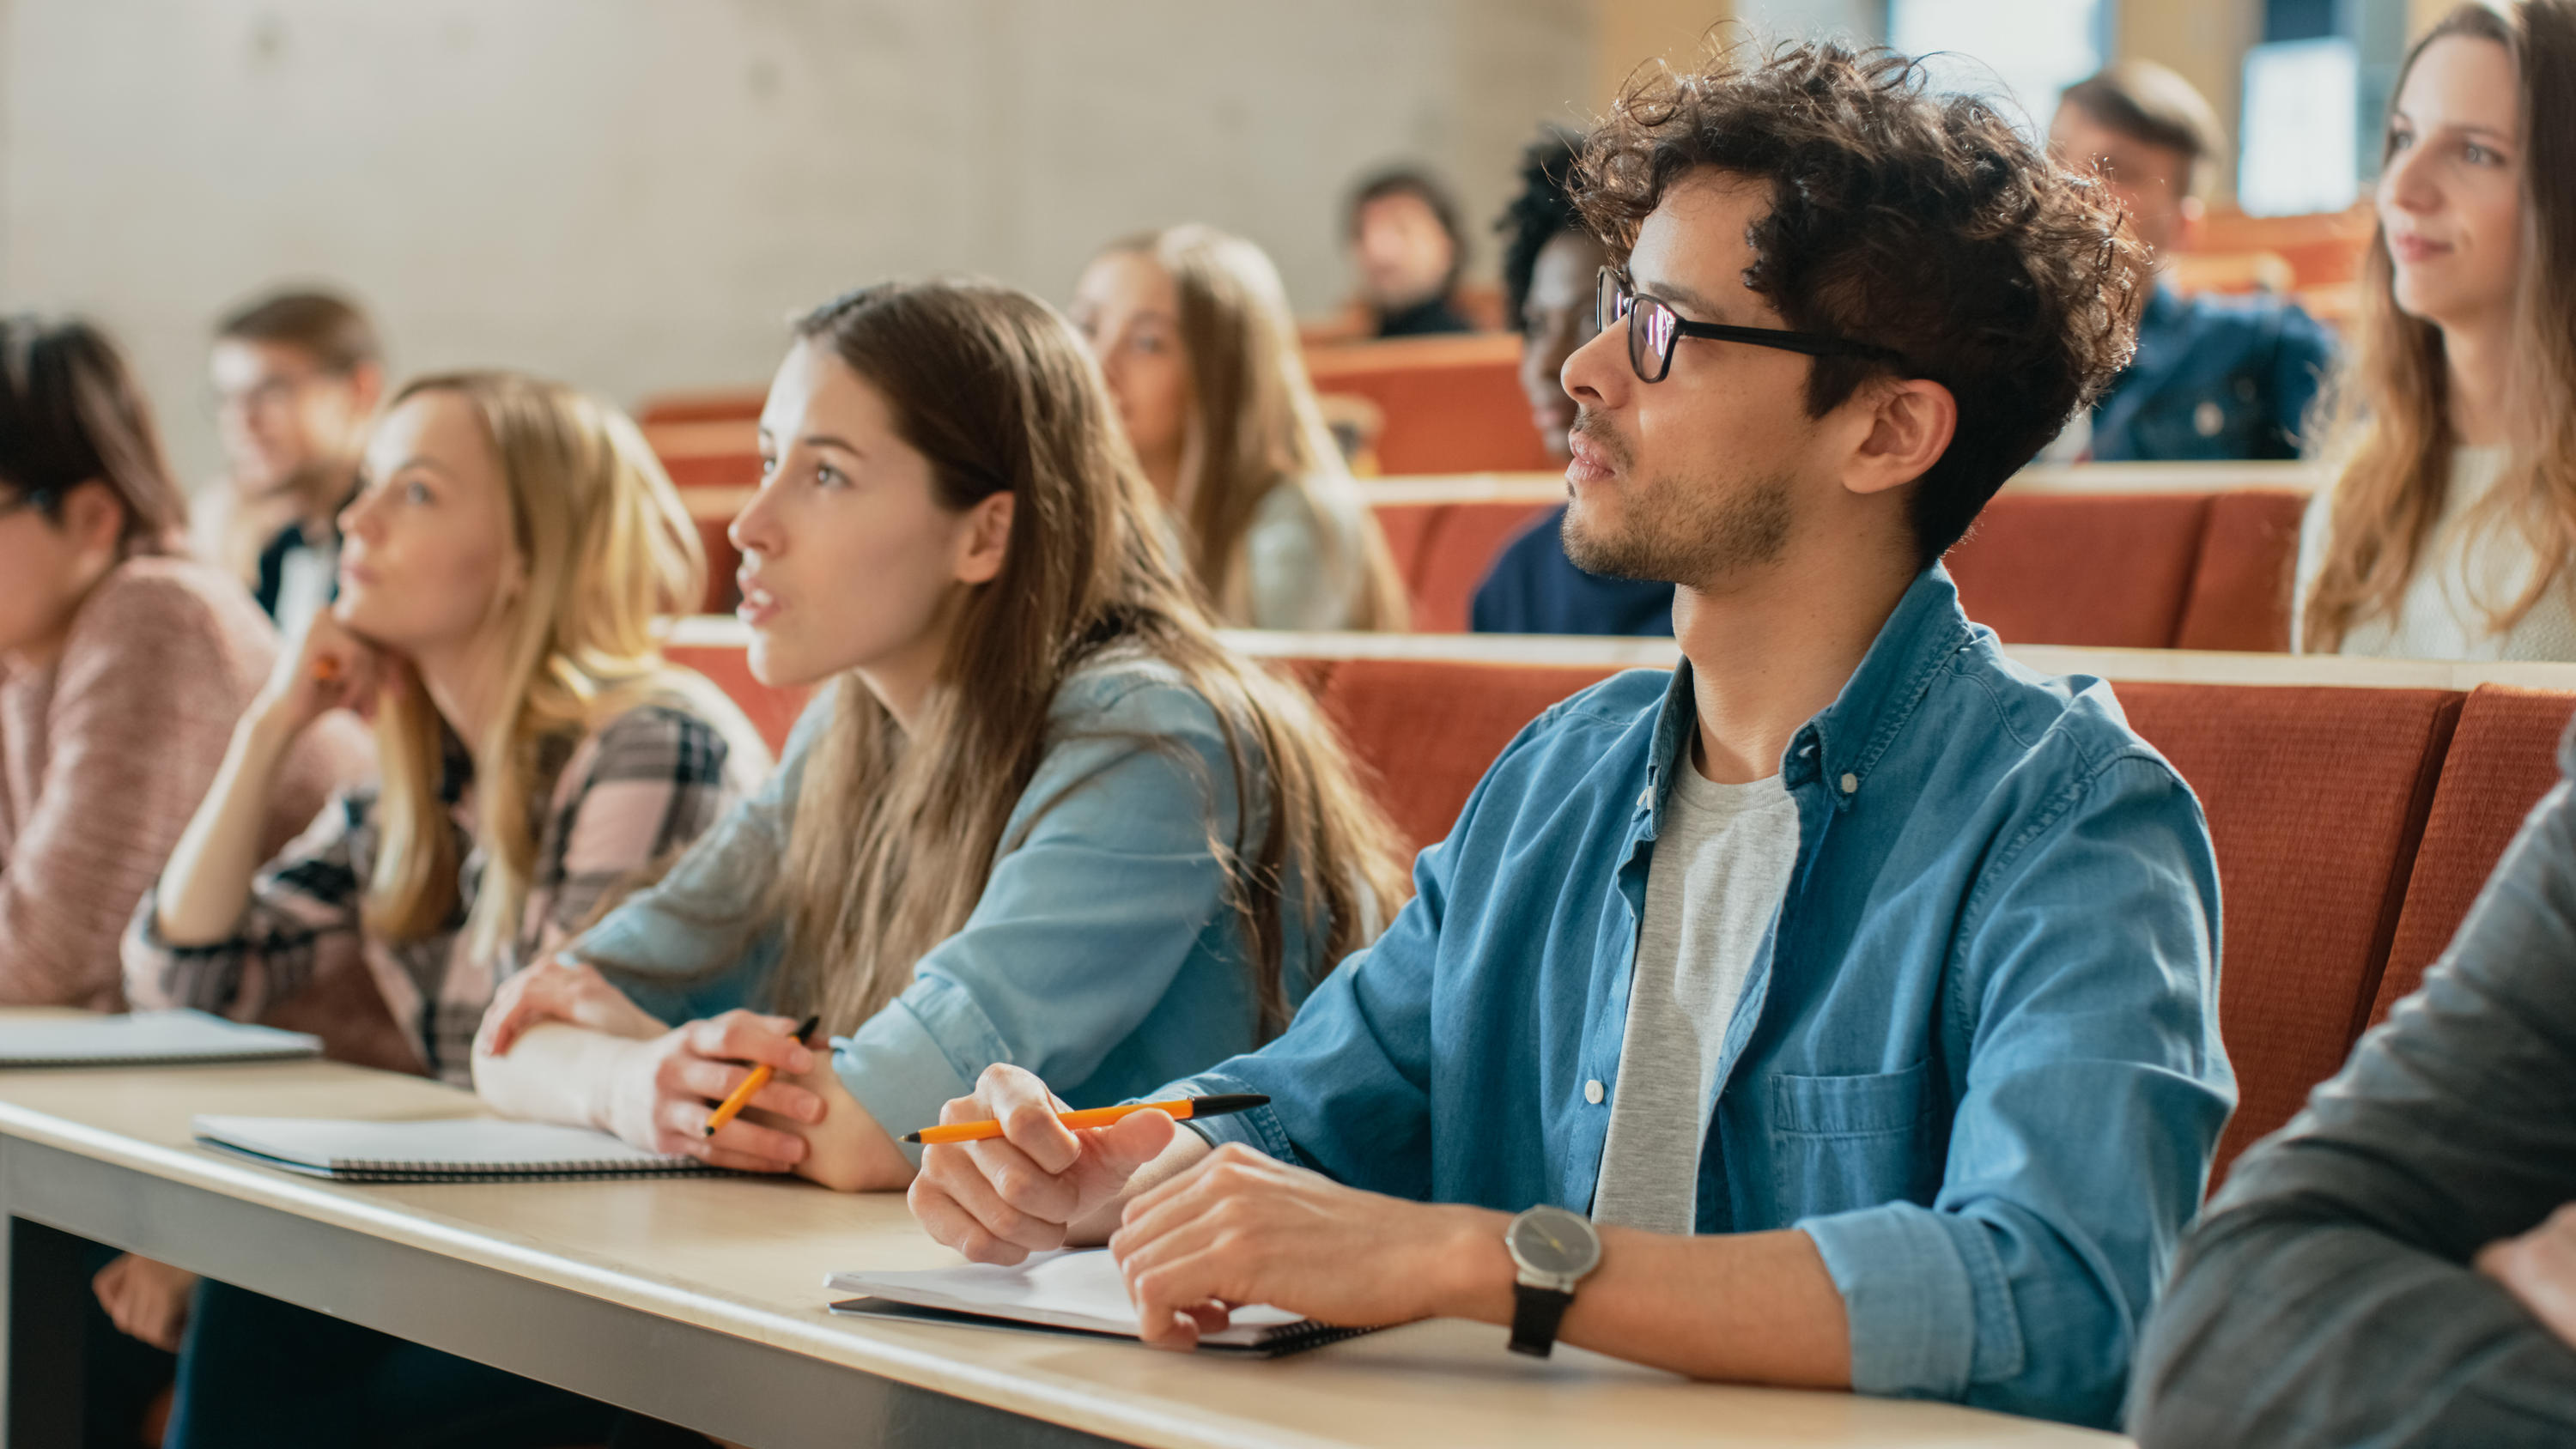 Attentive students in large classroom